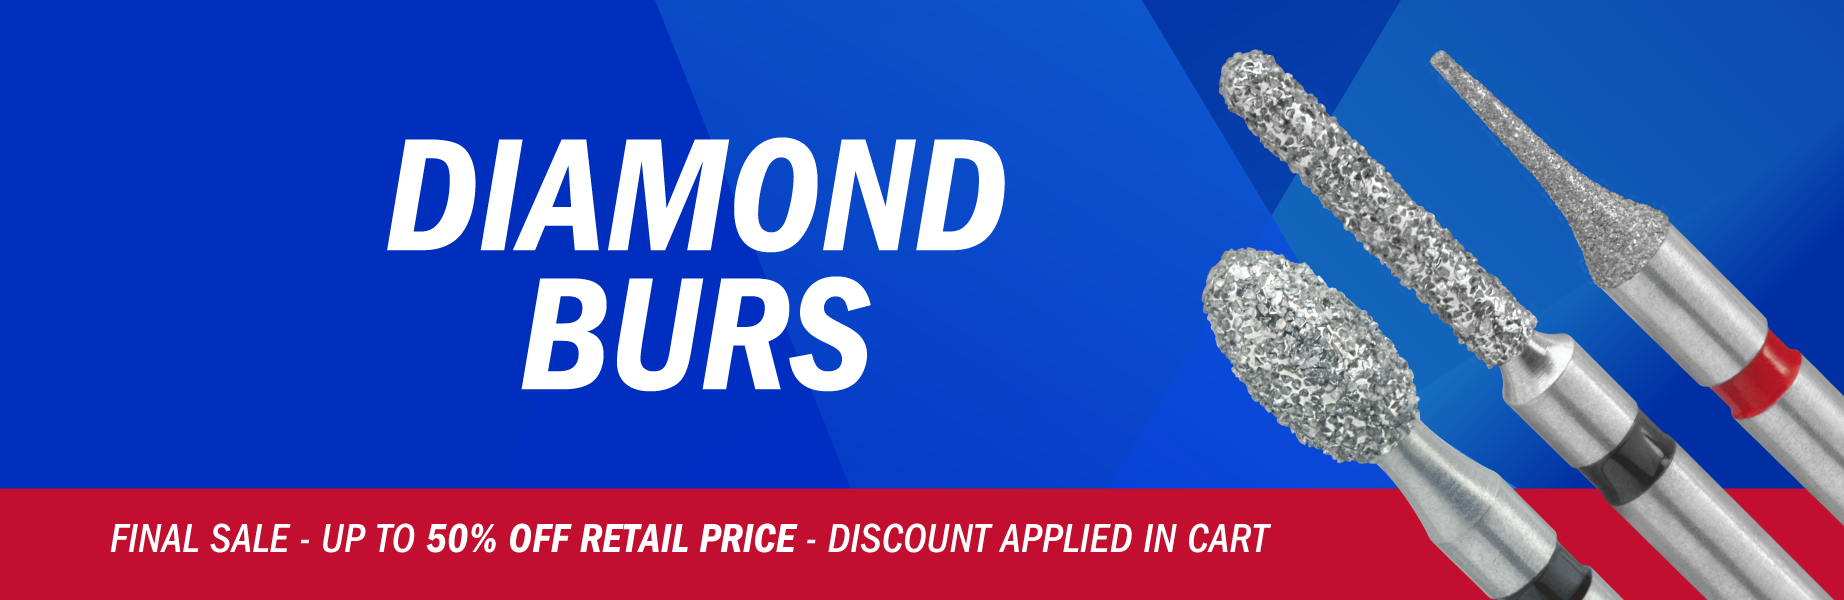 Diamond Burs - Final Sale up to 50% off Retail Price.